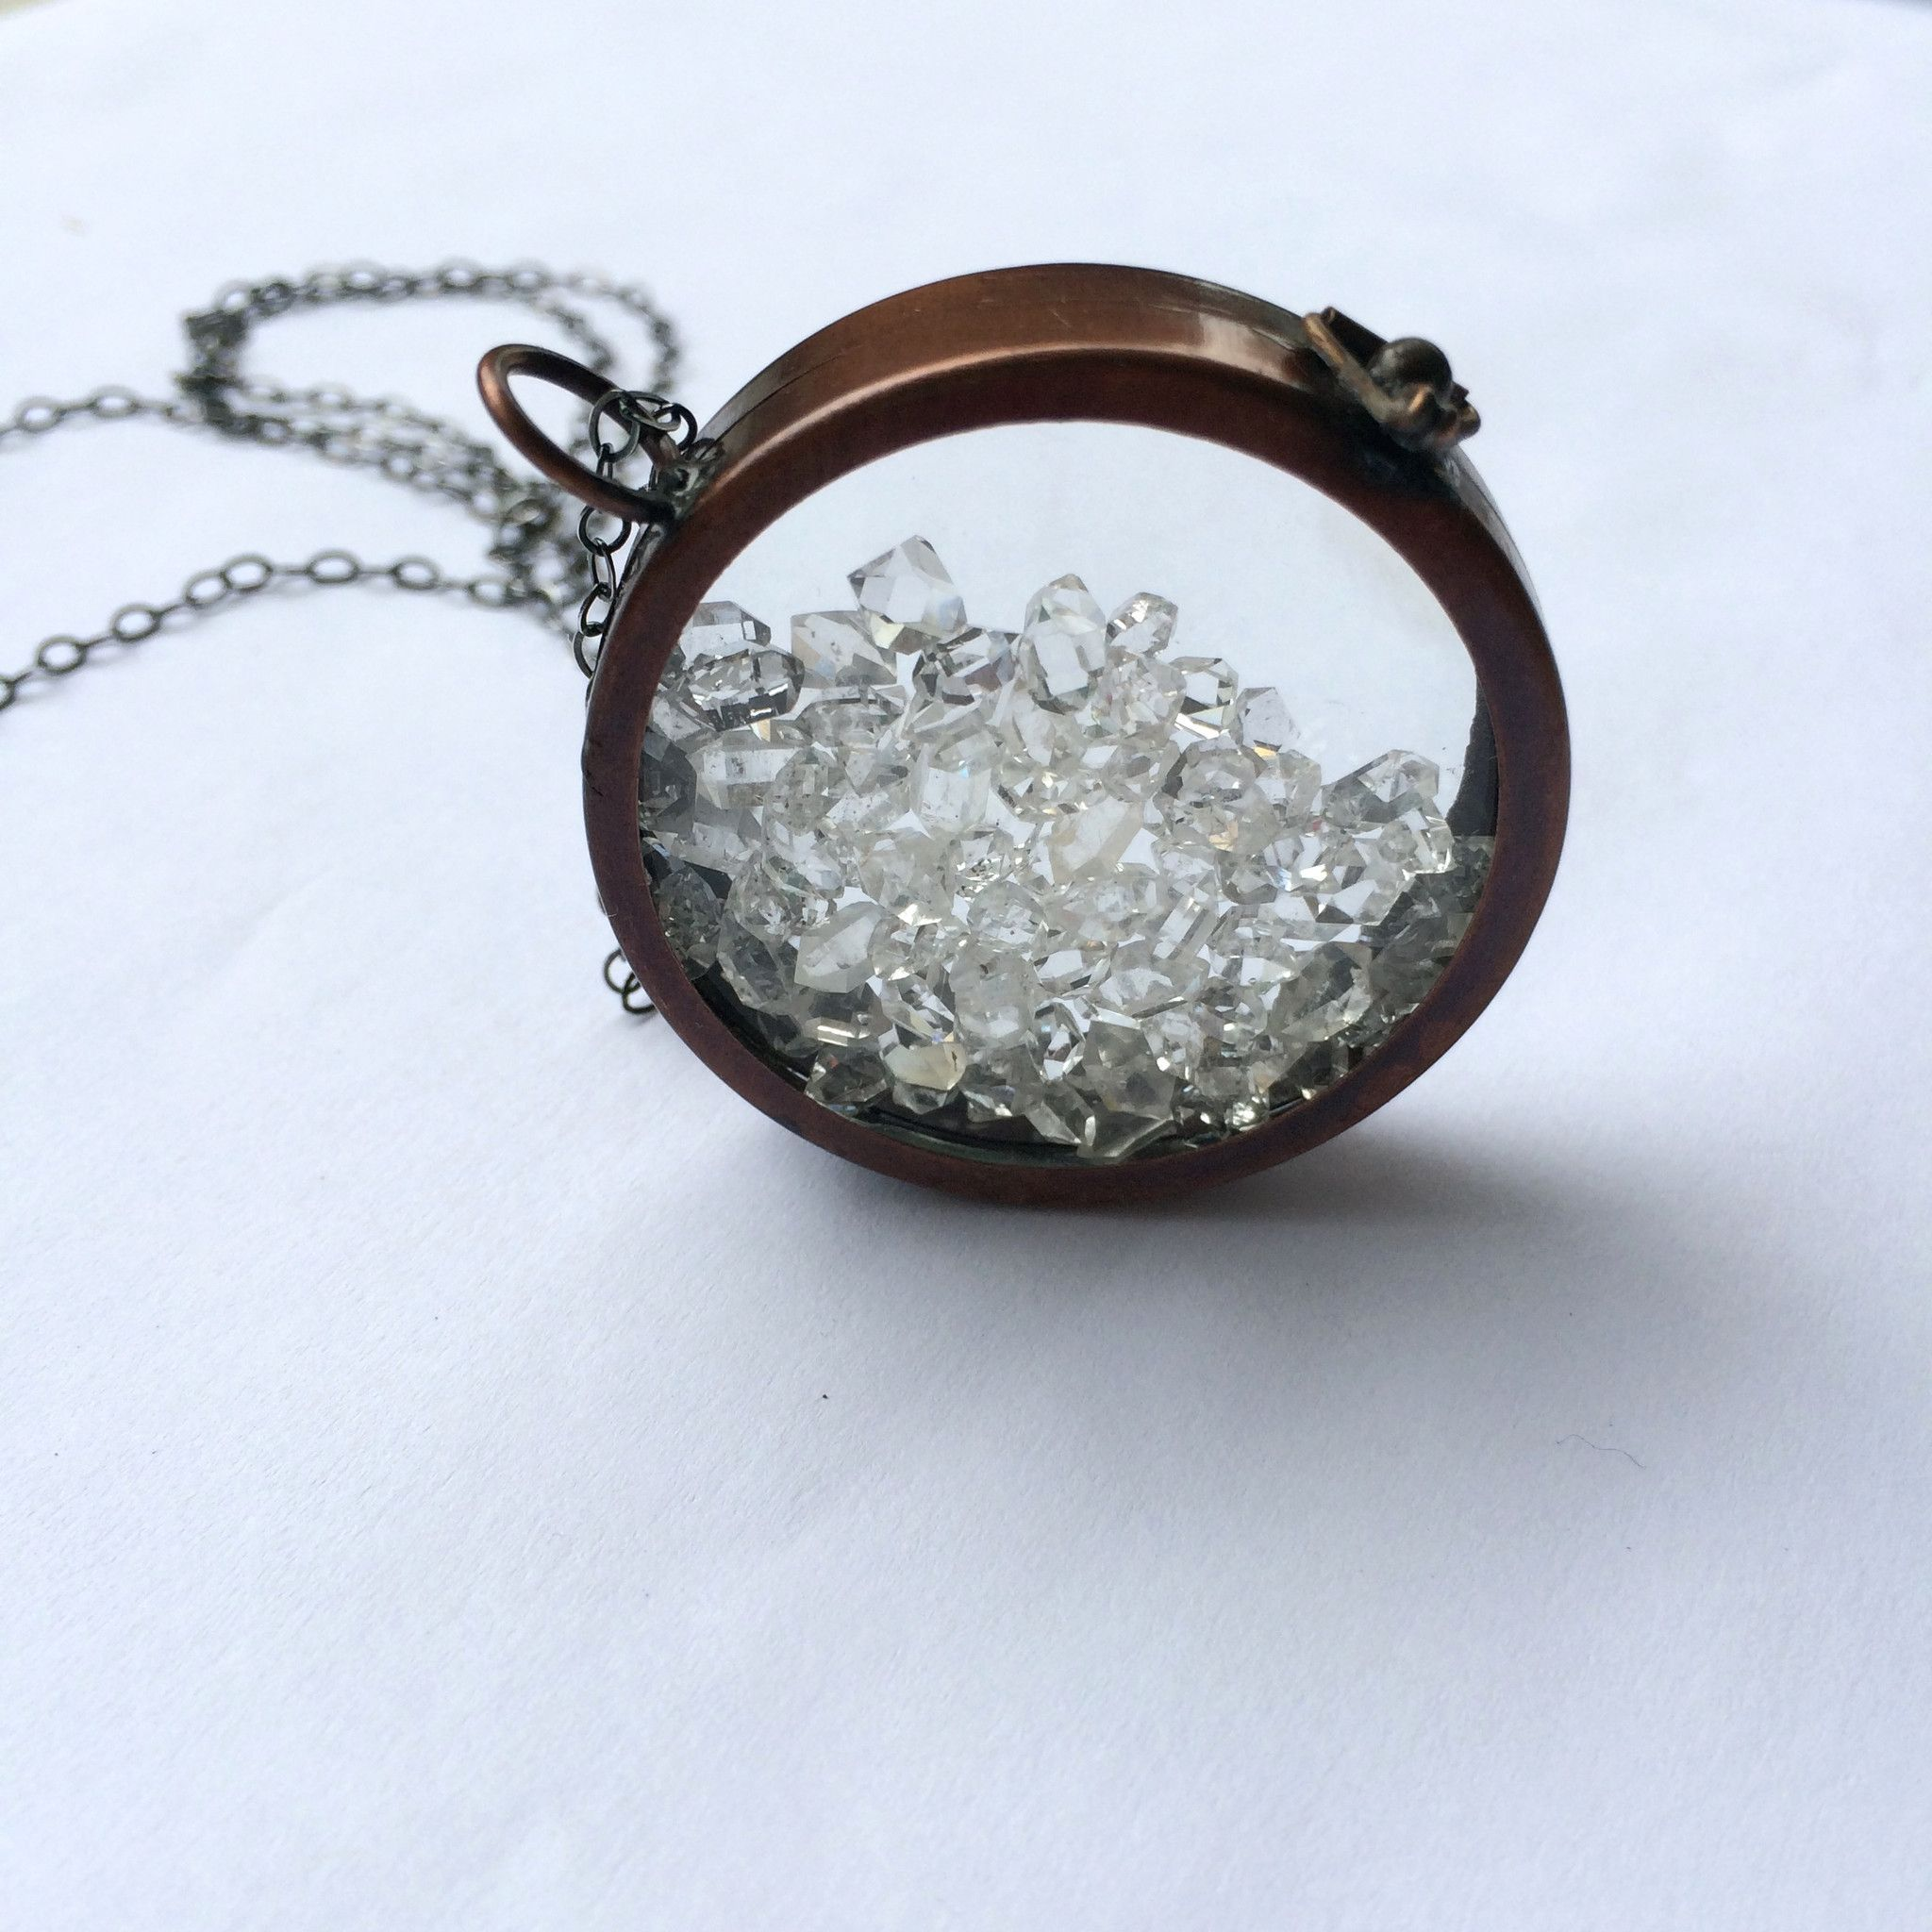 round perfume cheap online oil lockets essential diffuser product necklace by chain with pendants antique fashion express quot pads silver aromatherapy locket